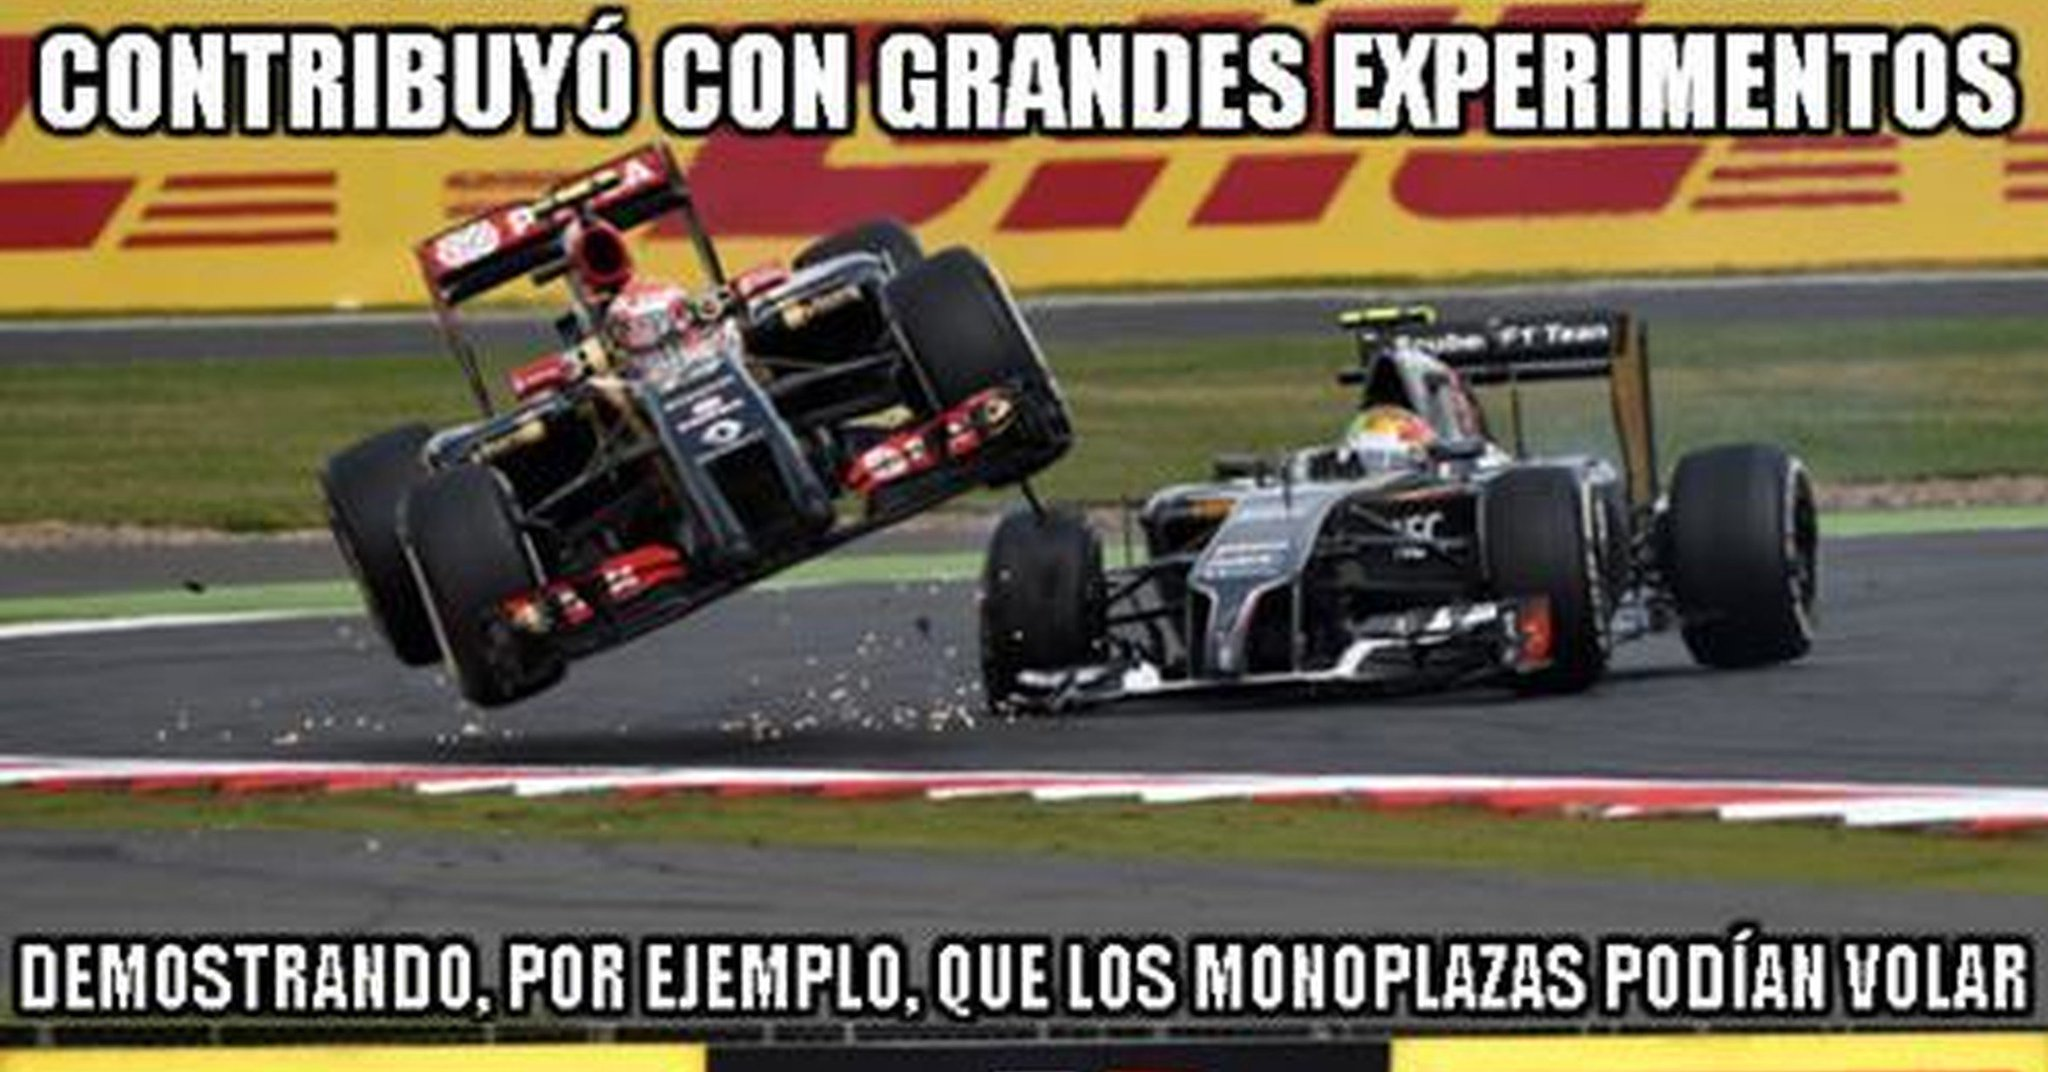 Re: HILO,RINCON,ESCONDITE,PADDOCK, CAFE HUMOR DE LA F1 2017.